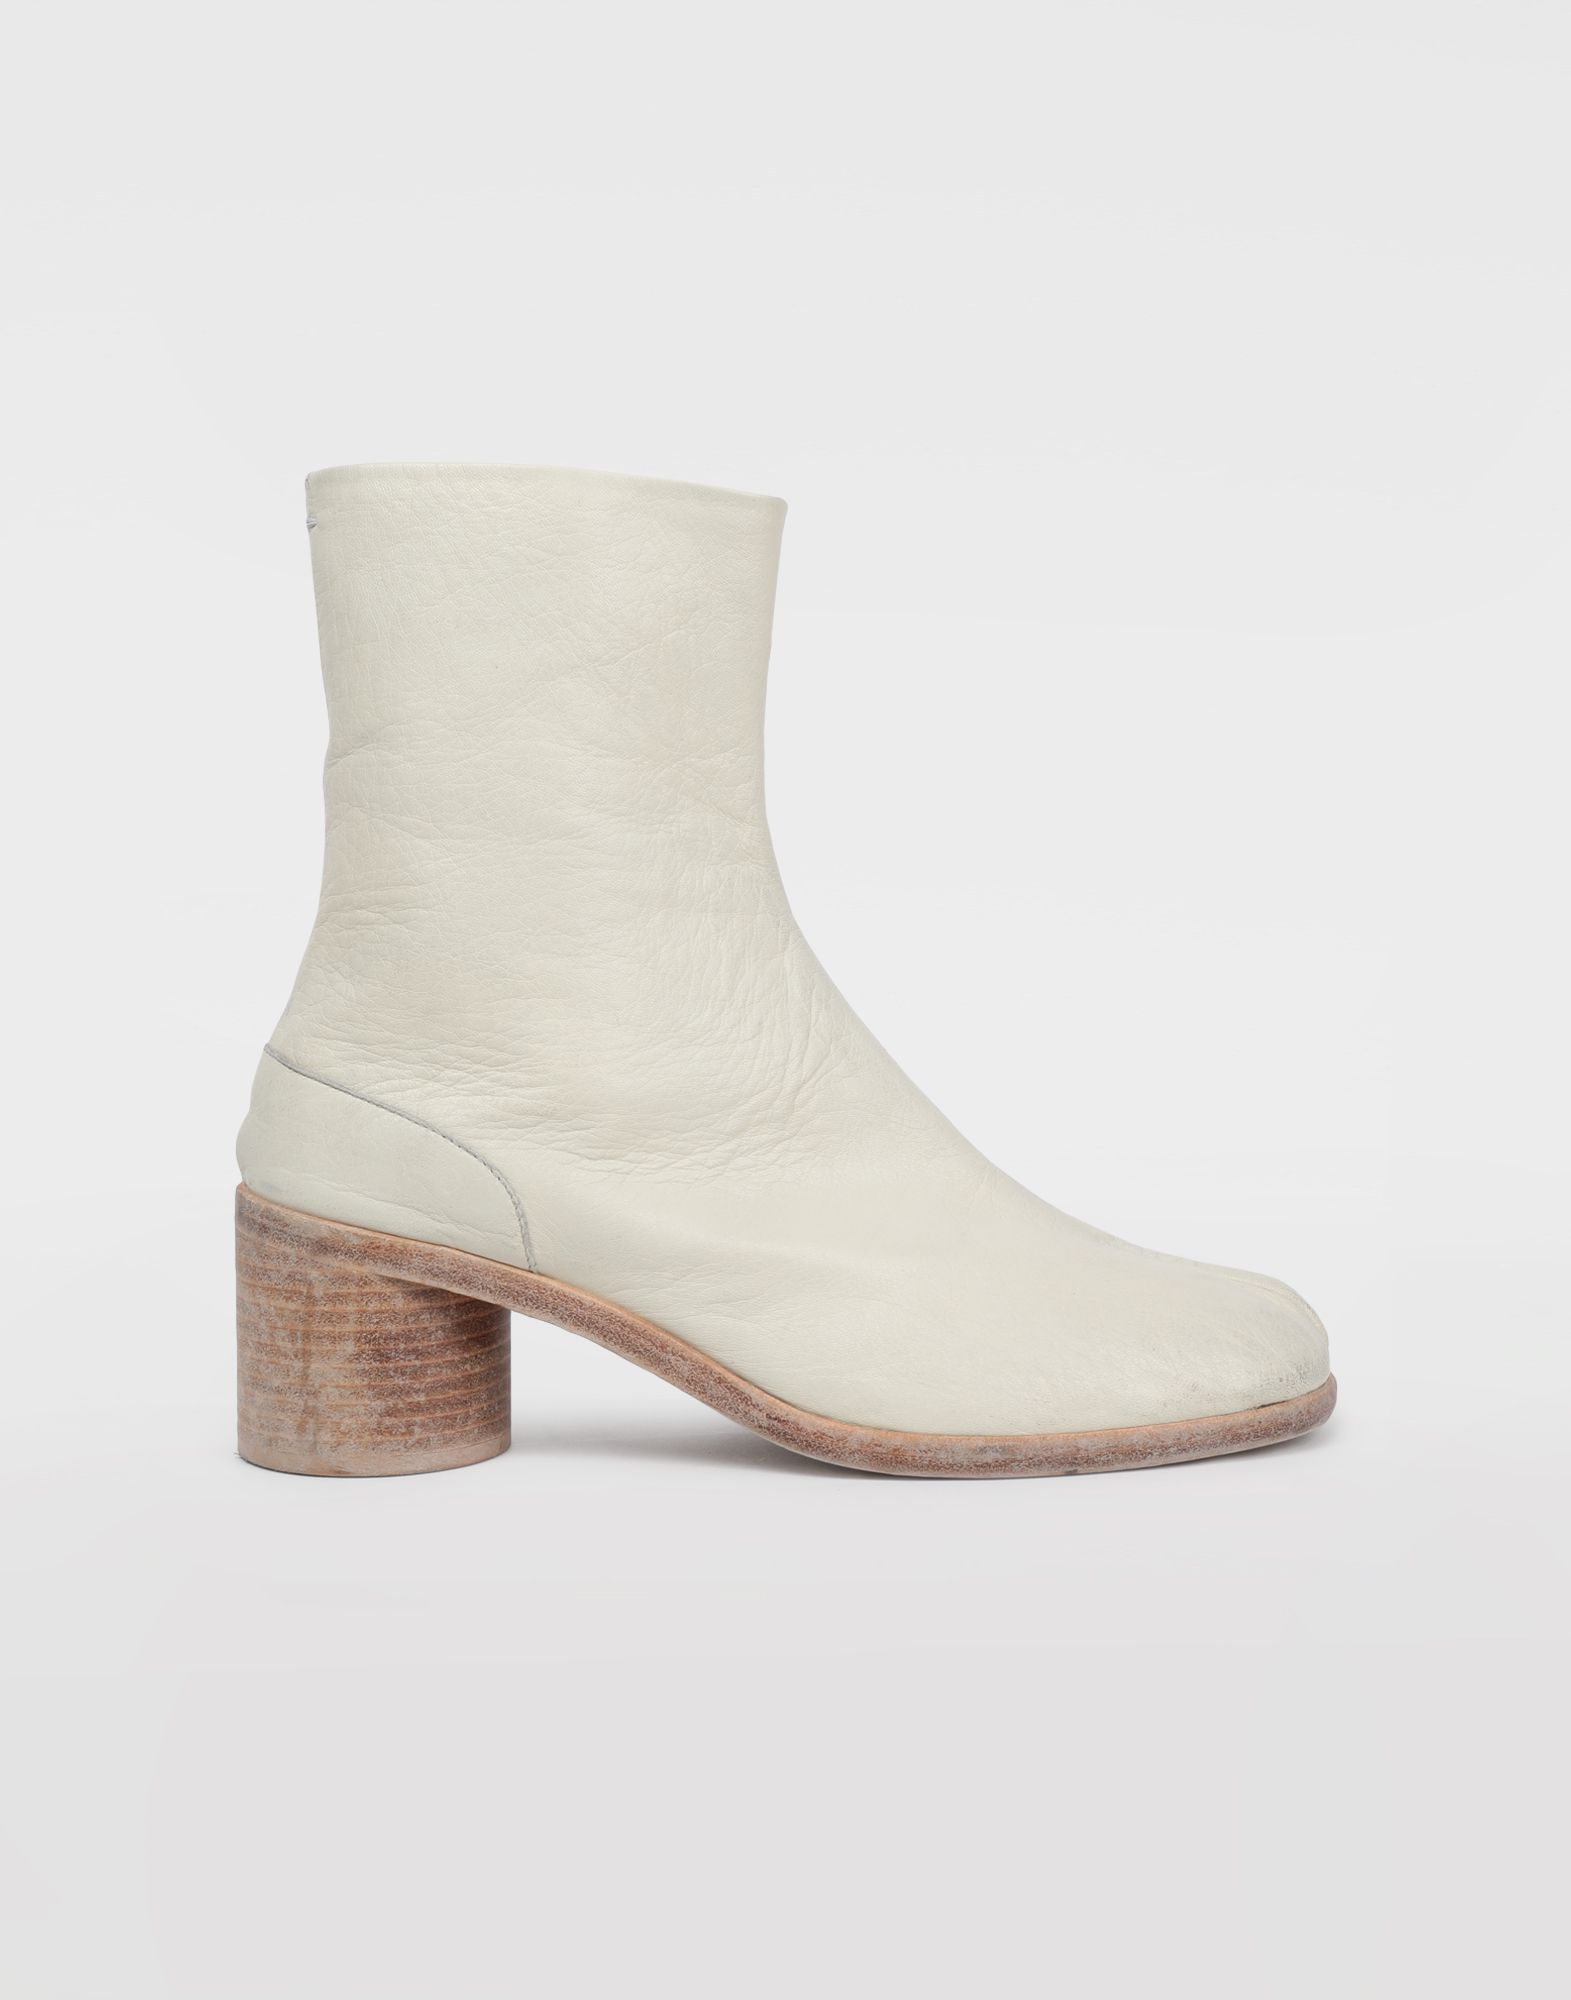 MAISON MARGIELA Tabi ankle boots Tabi boots & Ankle boots Man f